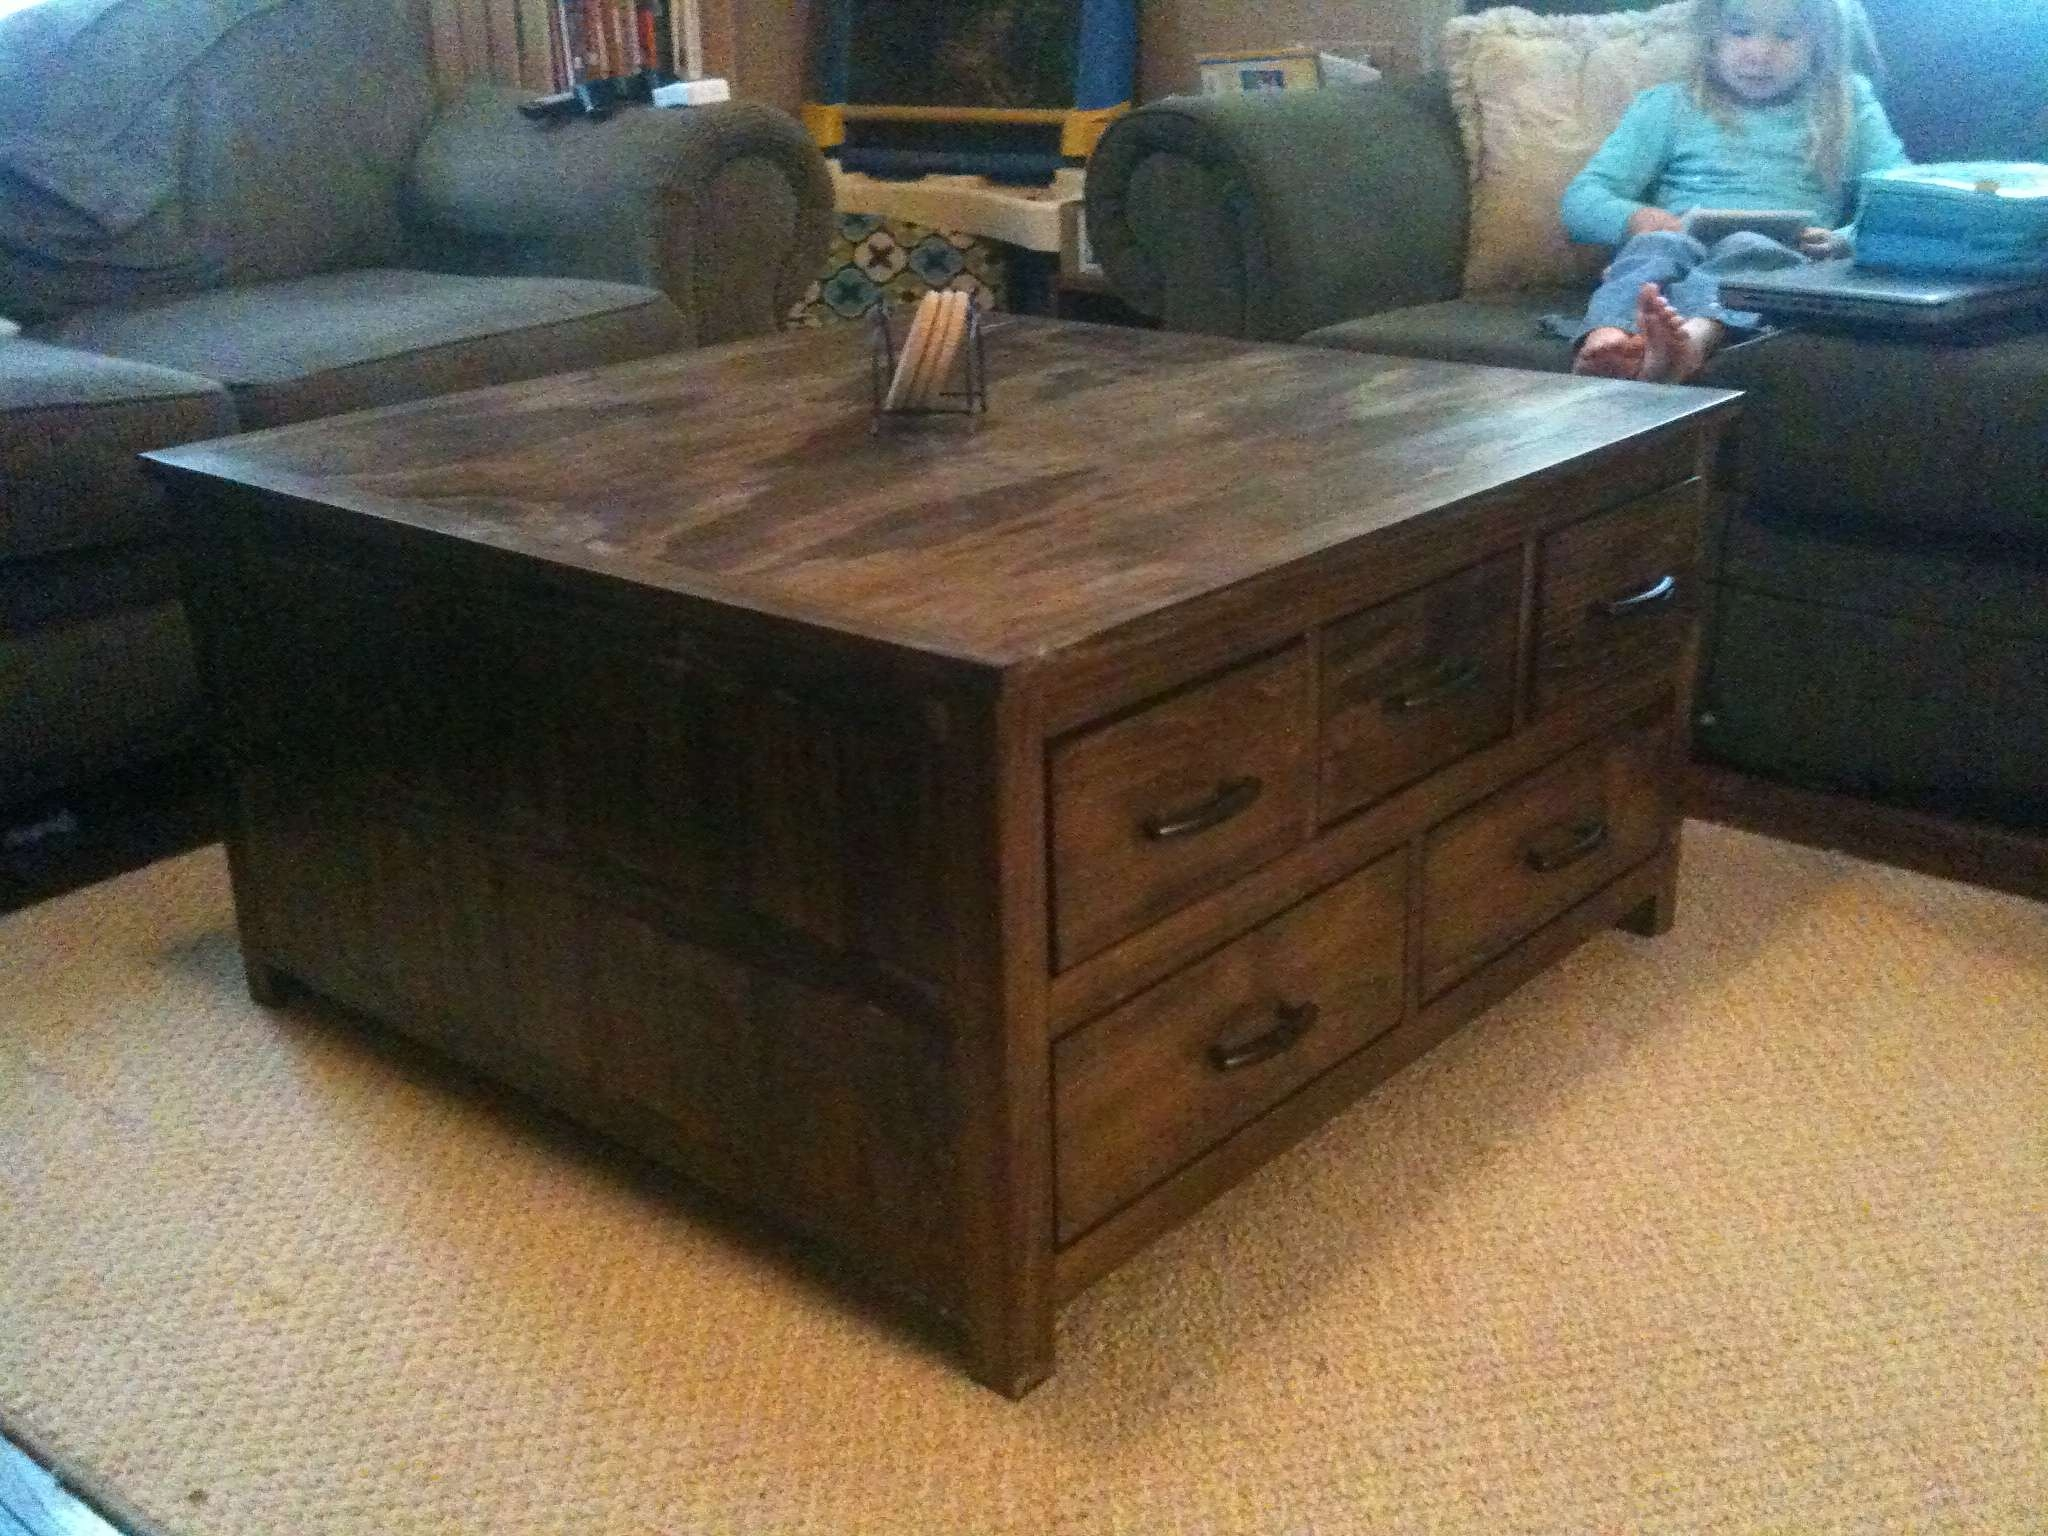 Most Current Low Coffee Table With Storage In Coffee Tables : Furniture Luxury Coffee Table With Stools For (View 11 of 20)